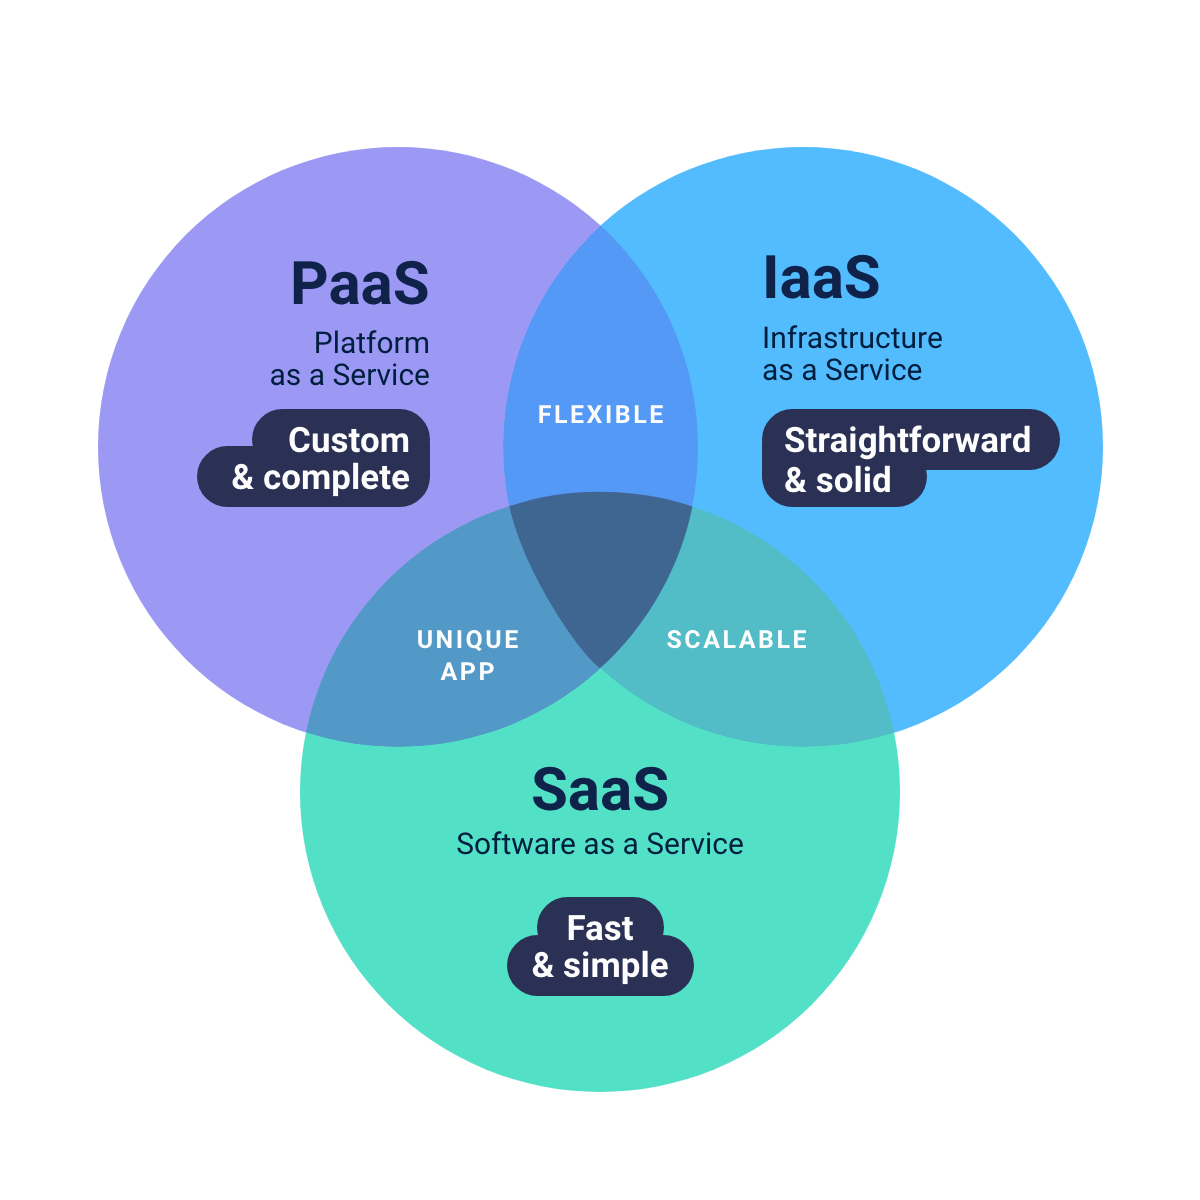 advantages of PaaS